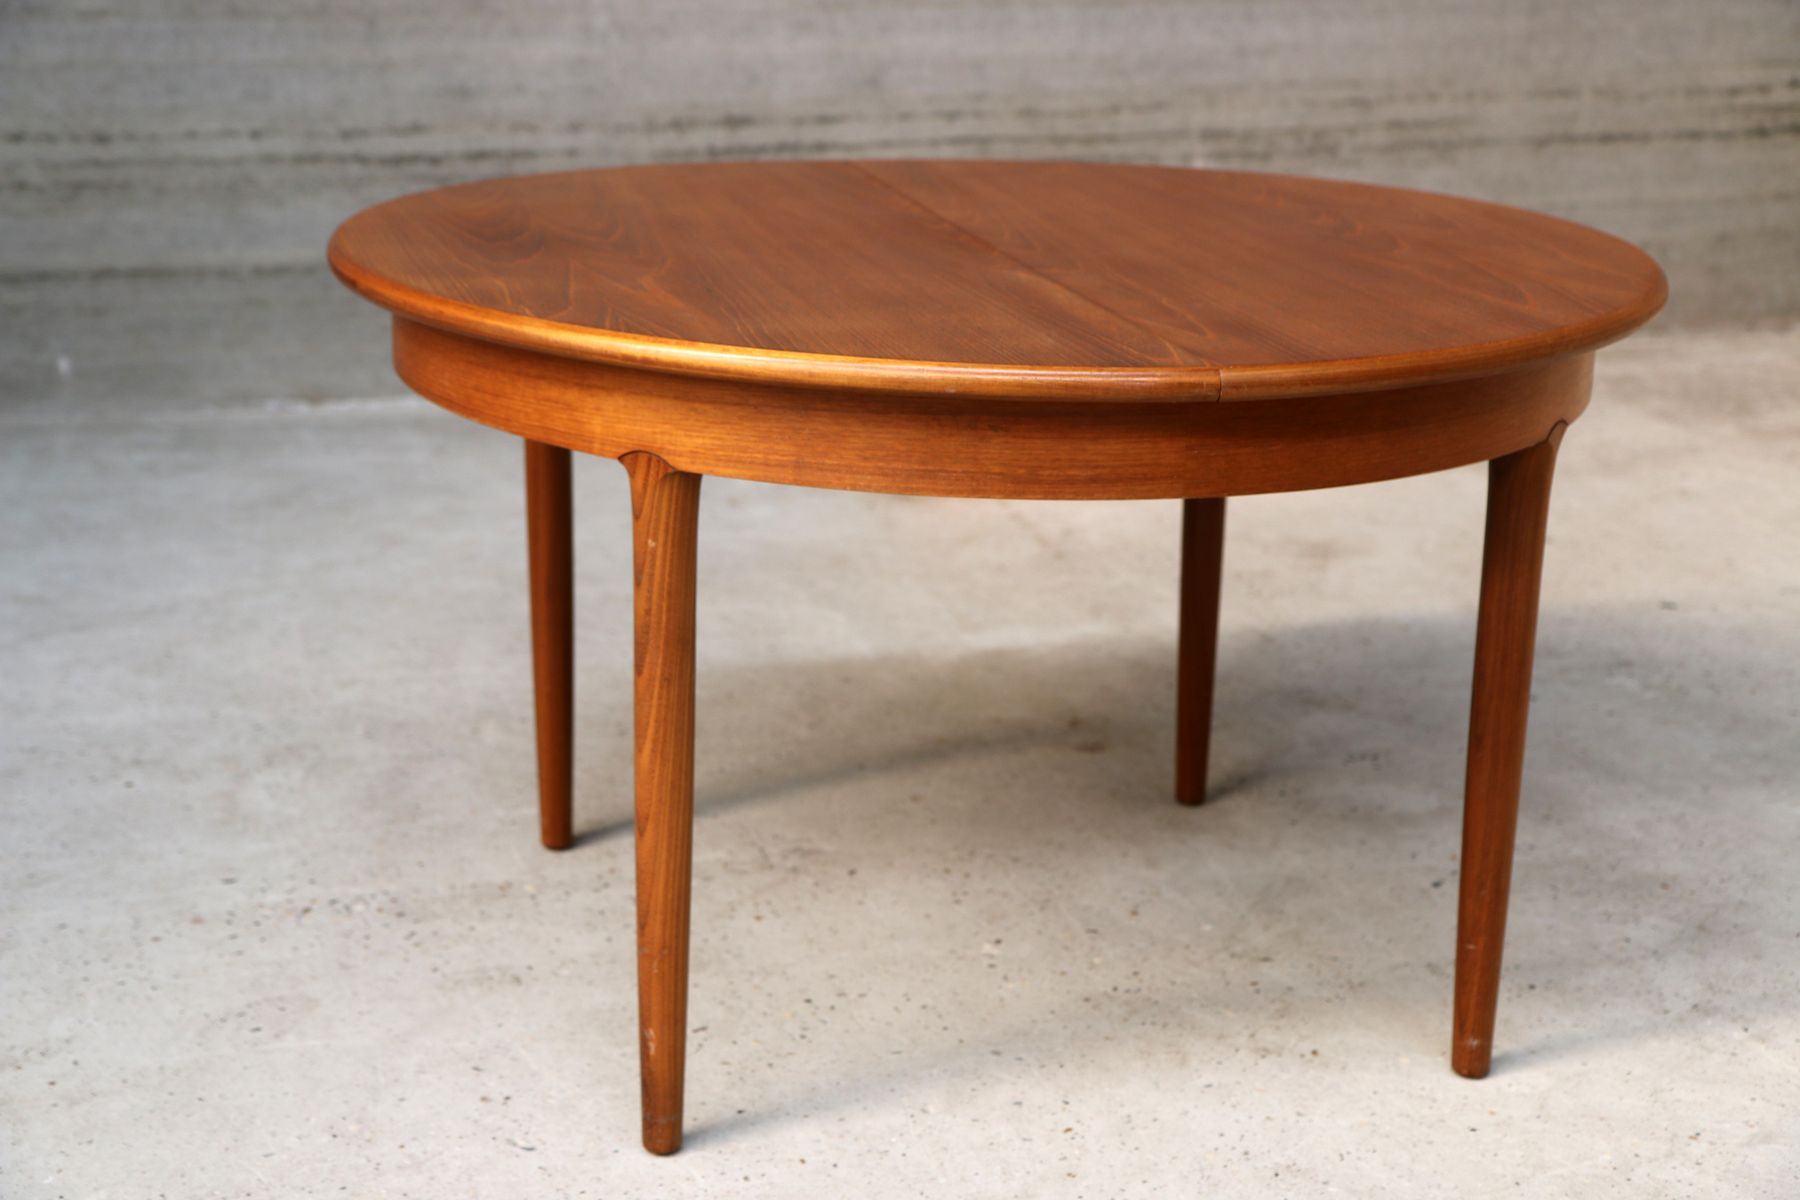 Table de salle manger extensible vintage scandinave en for Table a manger extensible scandinave